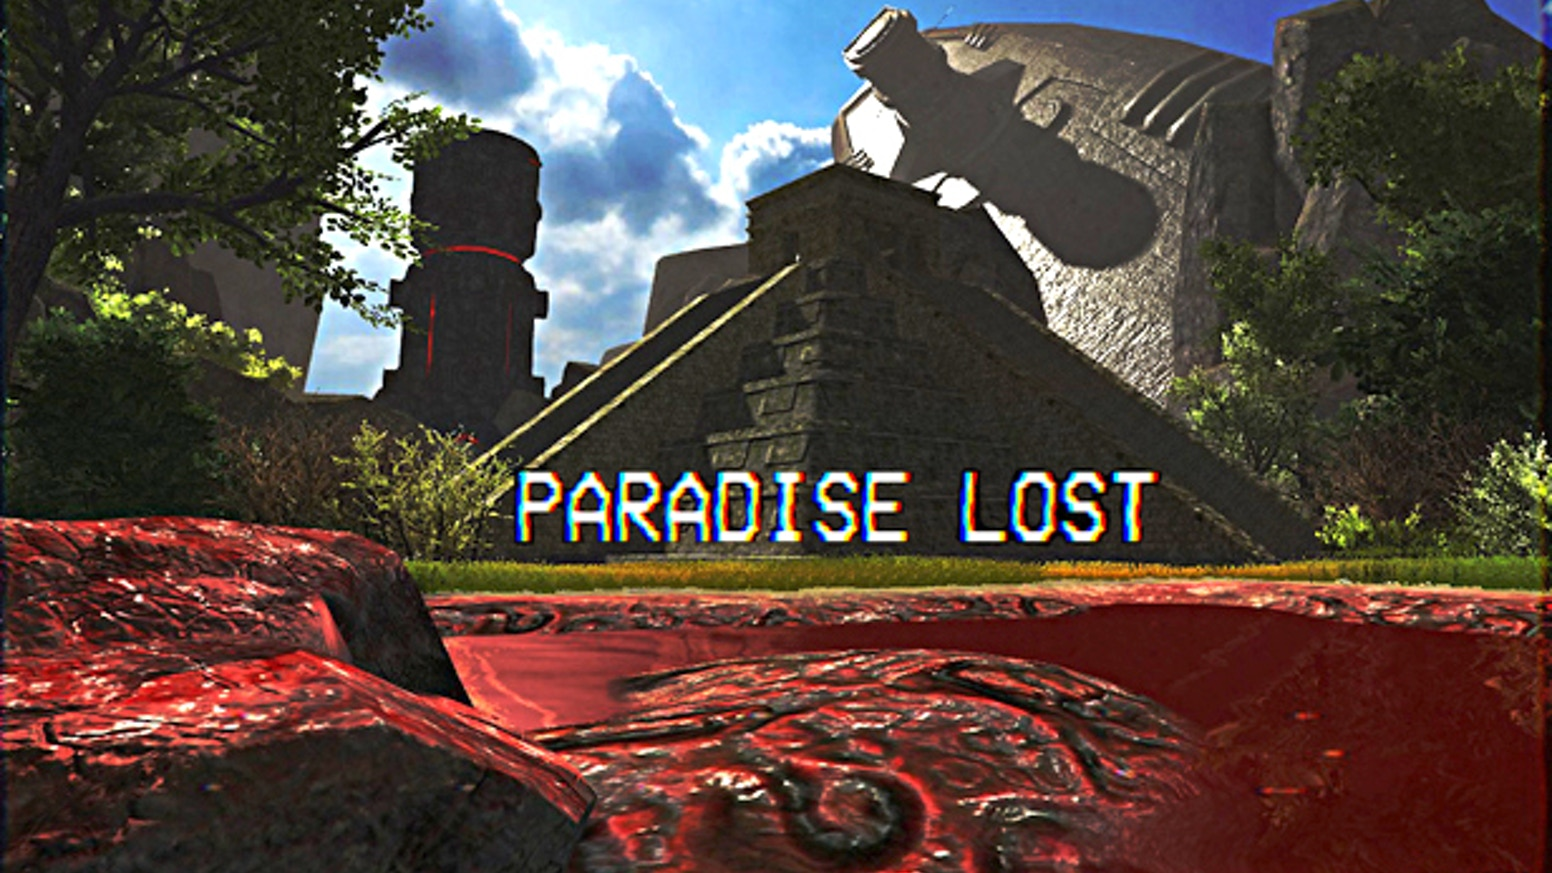 Paradise Lost: FPS Survival Cosmic Horror Game by JUAN ENRIQUE